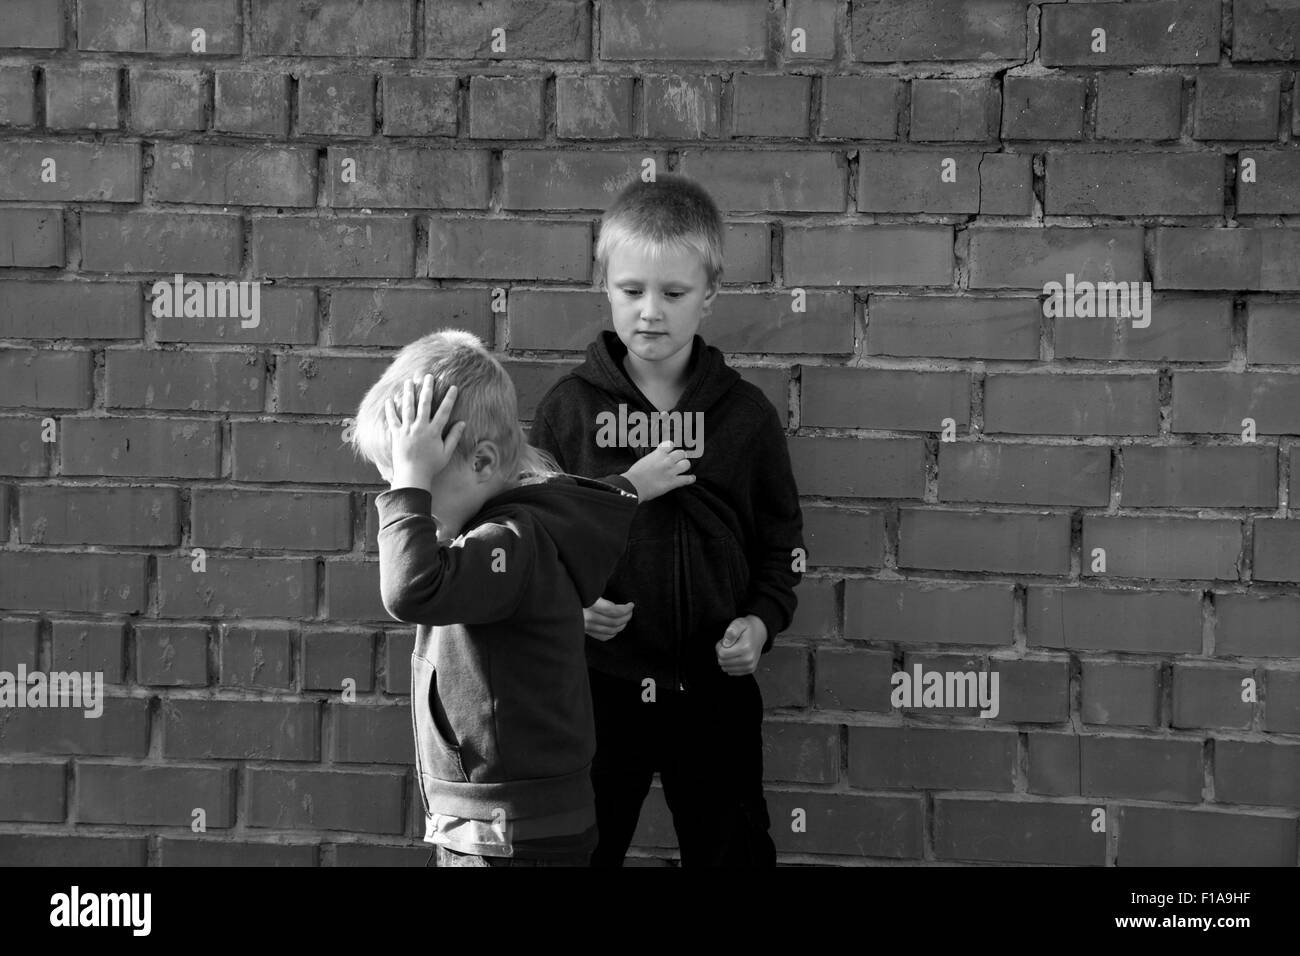 children bullying and fight between two angry aggressive brothers (kids, boys) - Stock Image